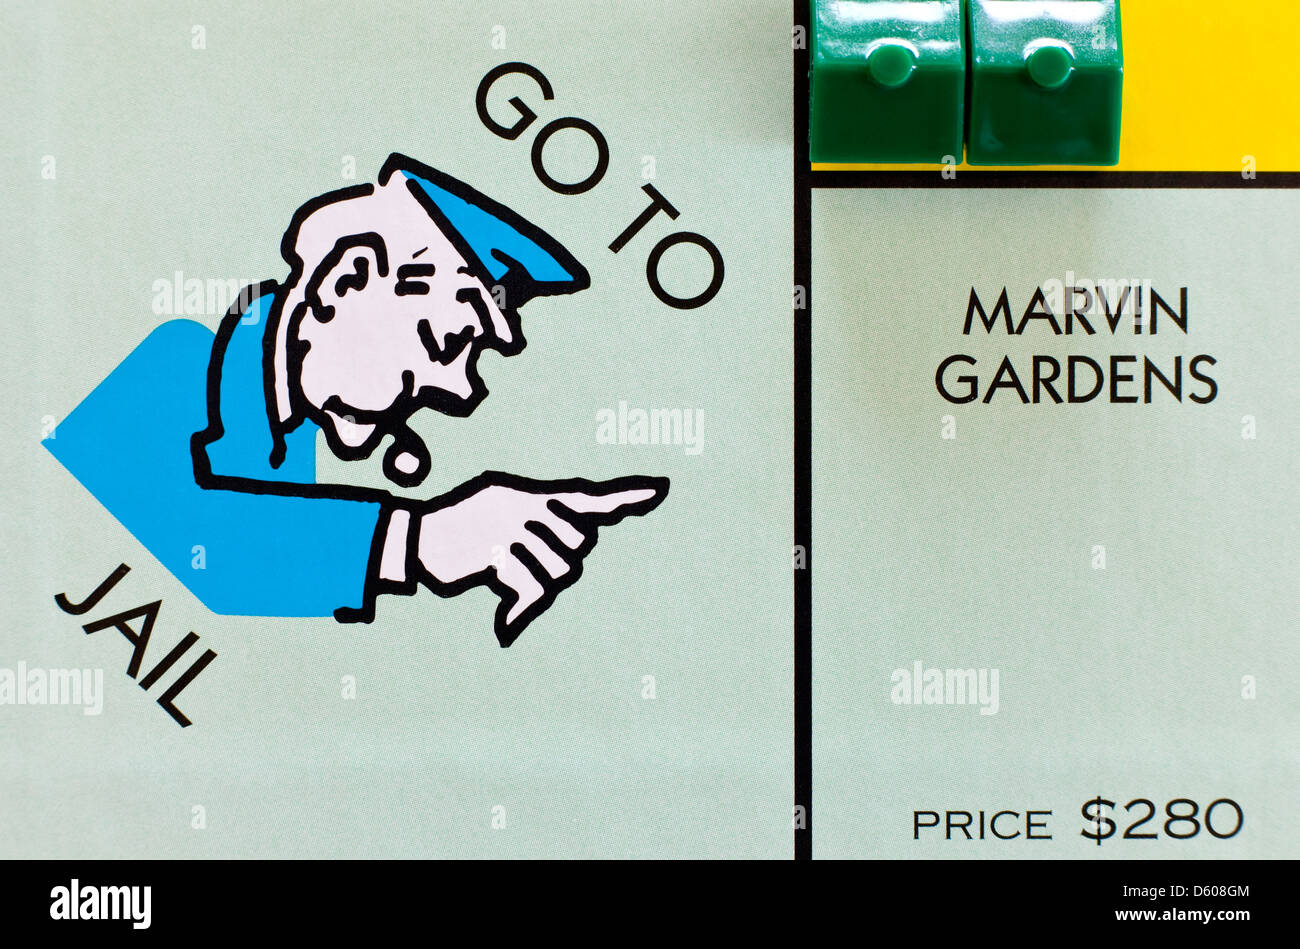 Monopoly board game - Go to Jail and Marvin Gardens spaces - Stock Image